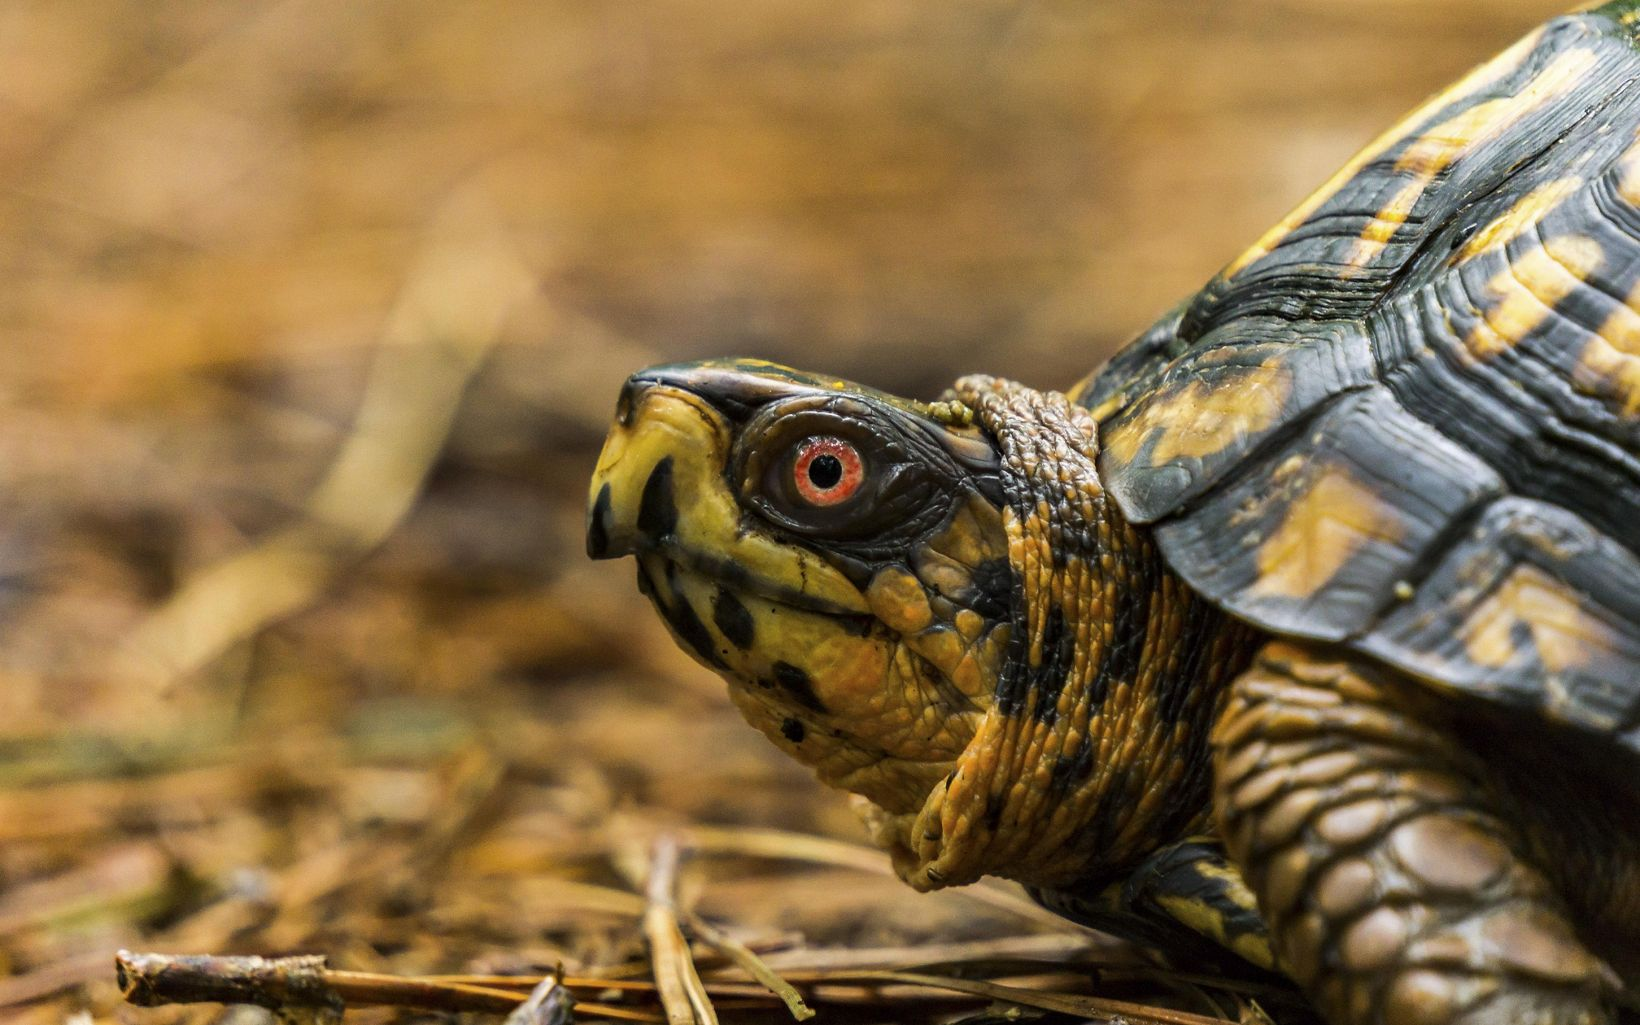 Closeup of the head of a box turtle.